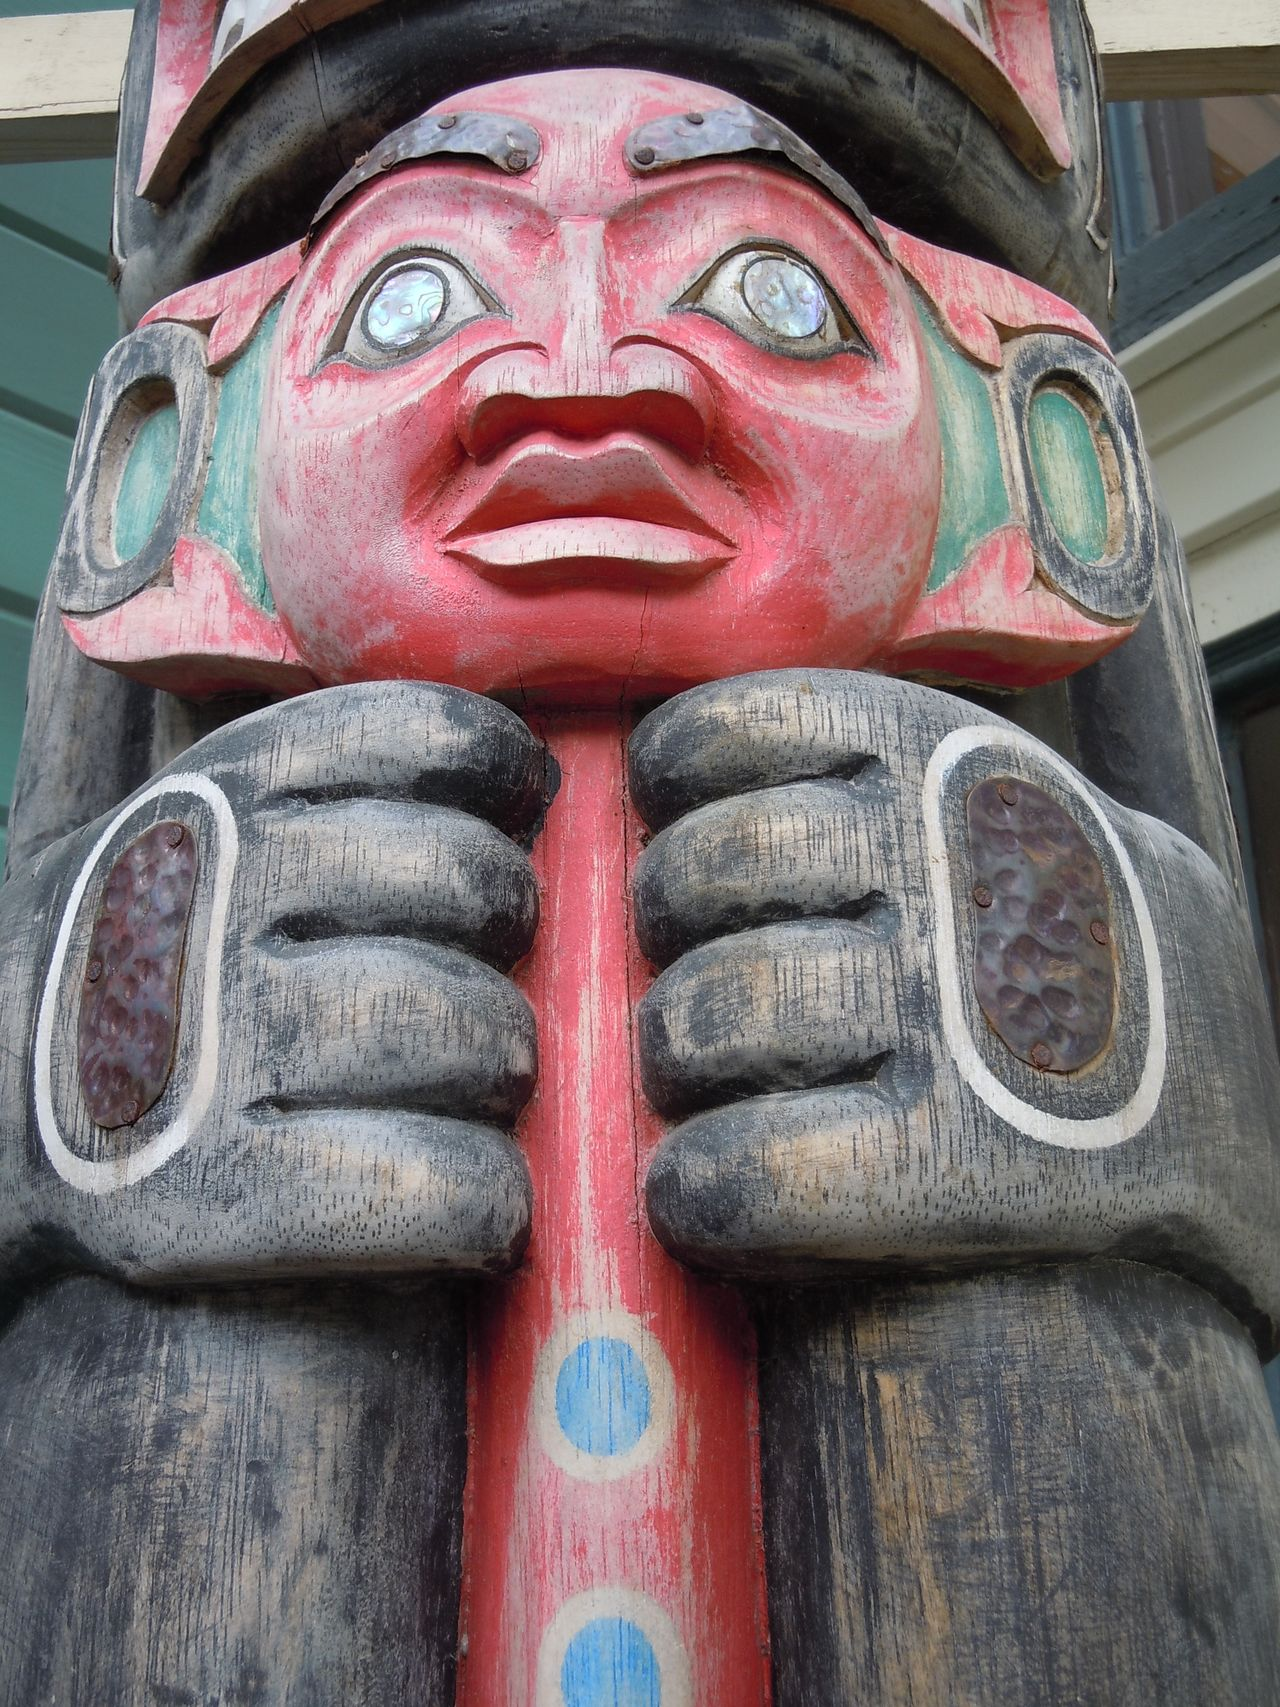 Totems in Alaska Alaska Carving - Craft Product Sculpture Statue Totem Totems Wooden Indian